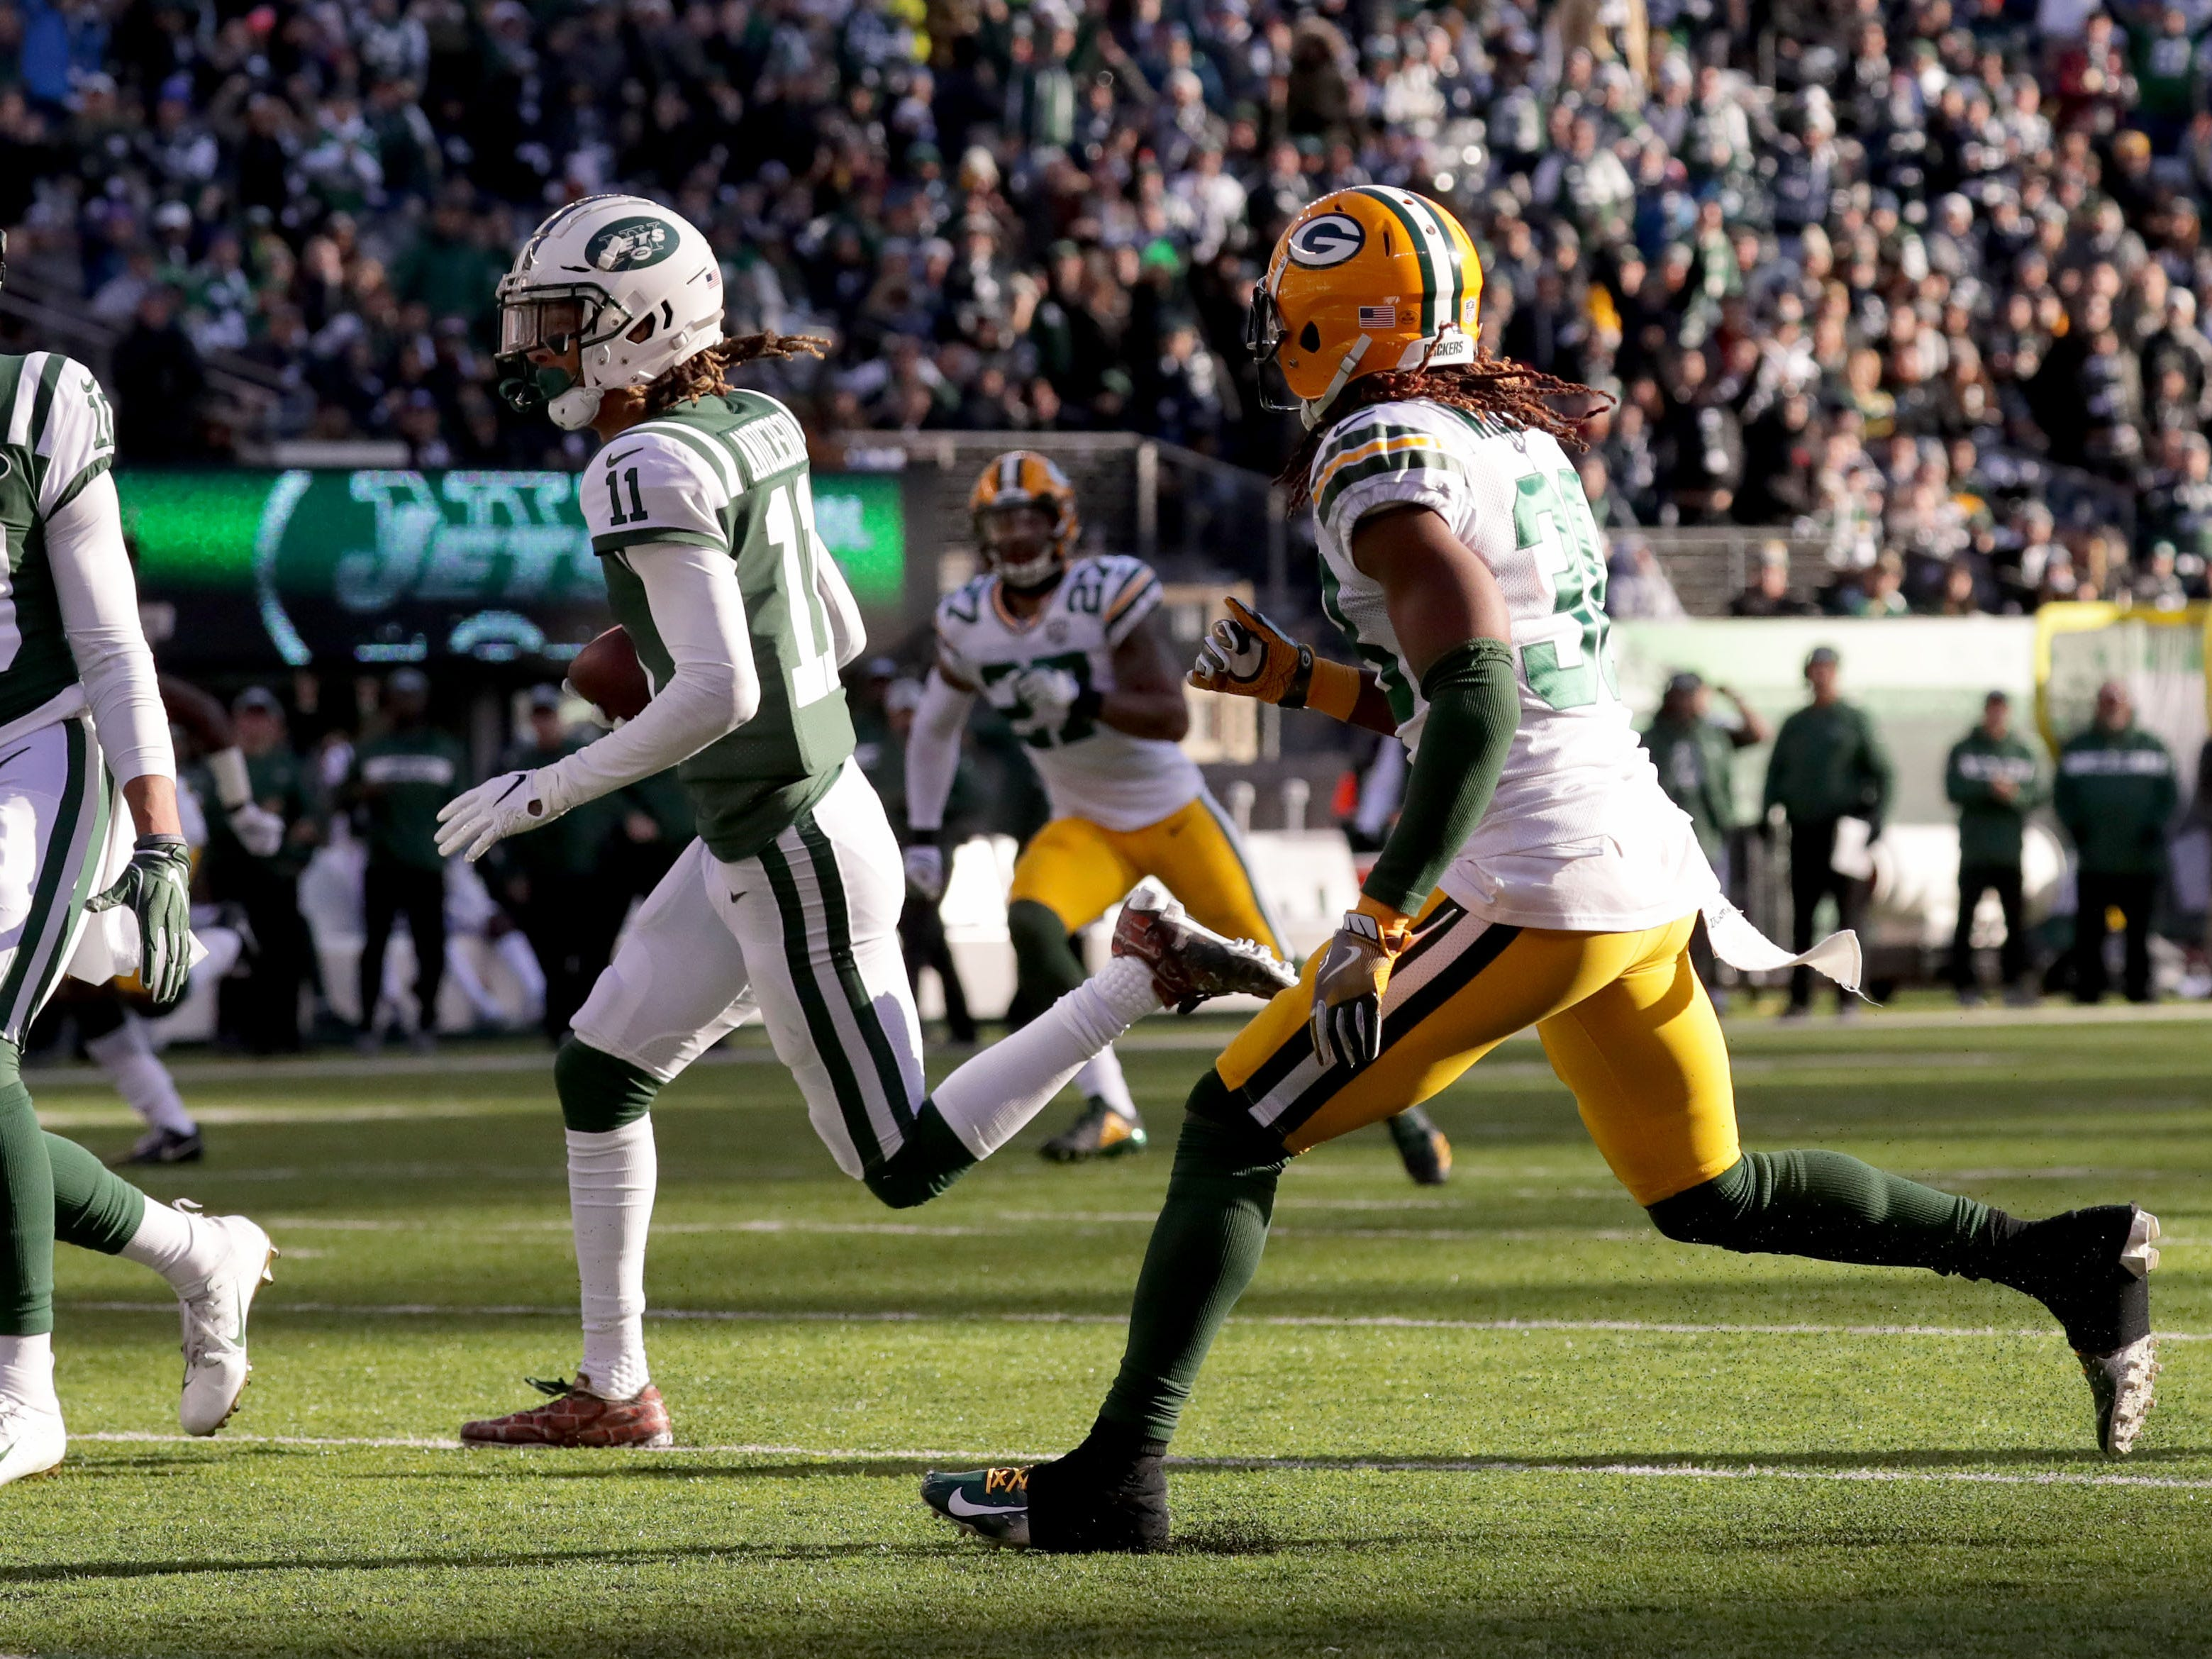 New York Jets' Robby Anderson (11) scores a touchdown during first half of the Green Bay Packers game against the New York Jets at MetLife Stadium Sunday, Dec. 23, 2018, in East Rutherford.